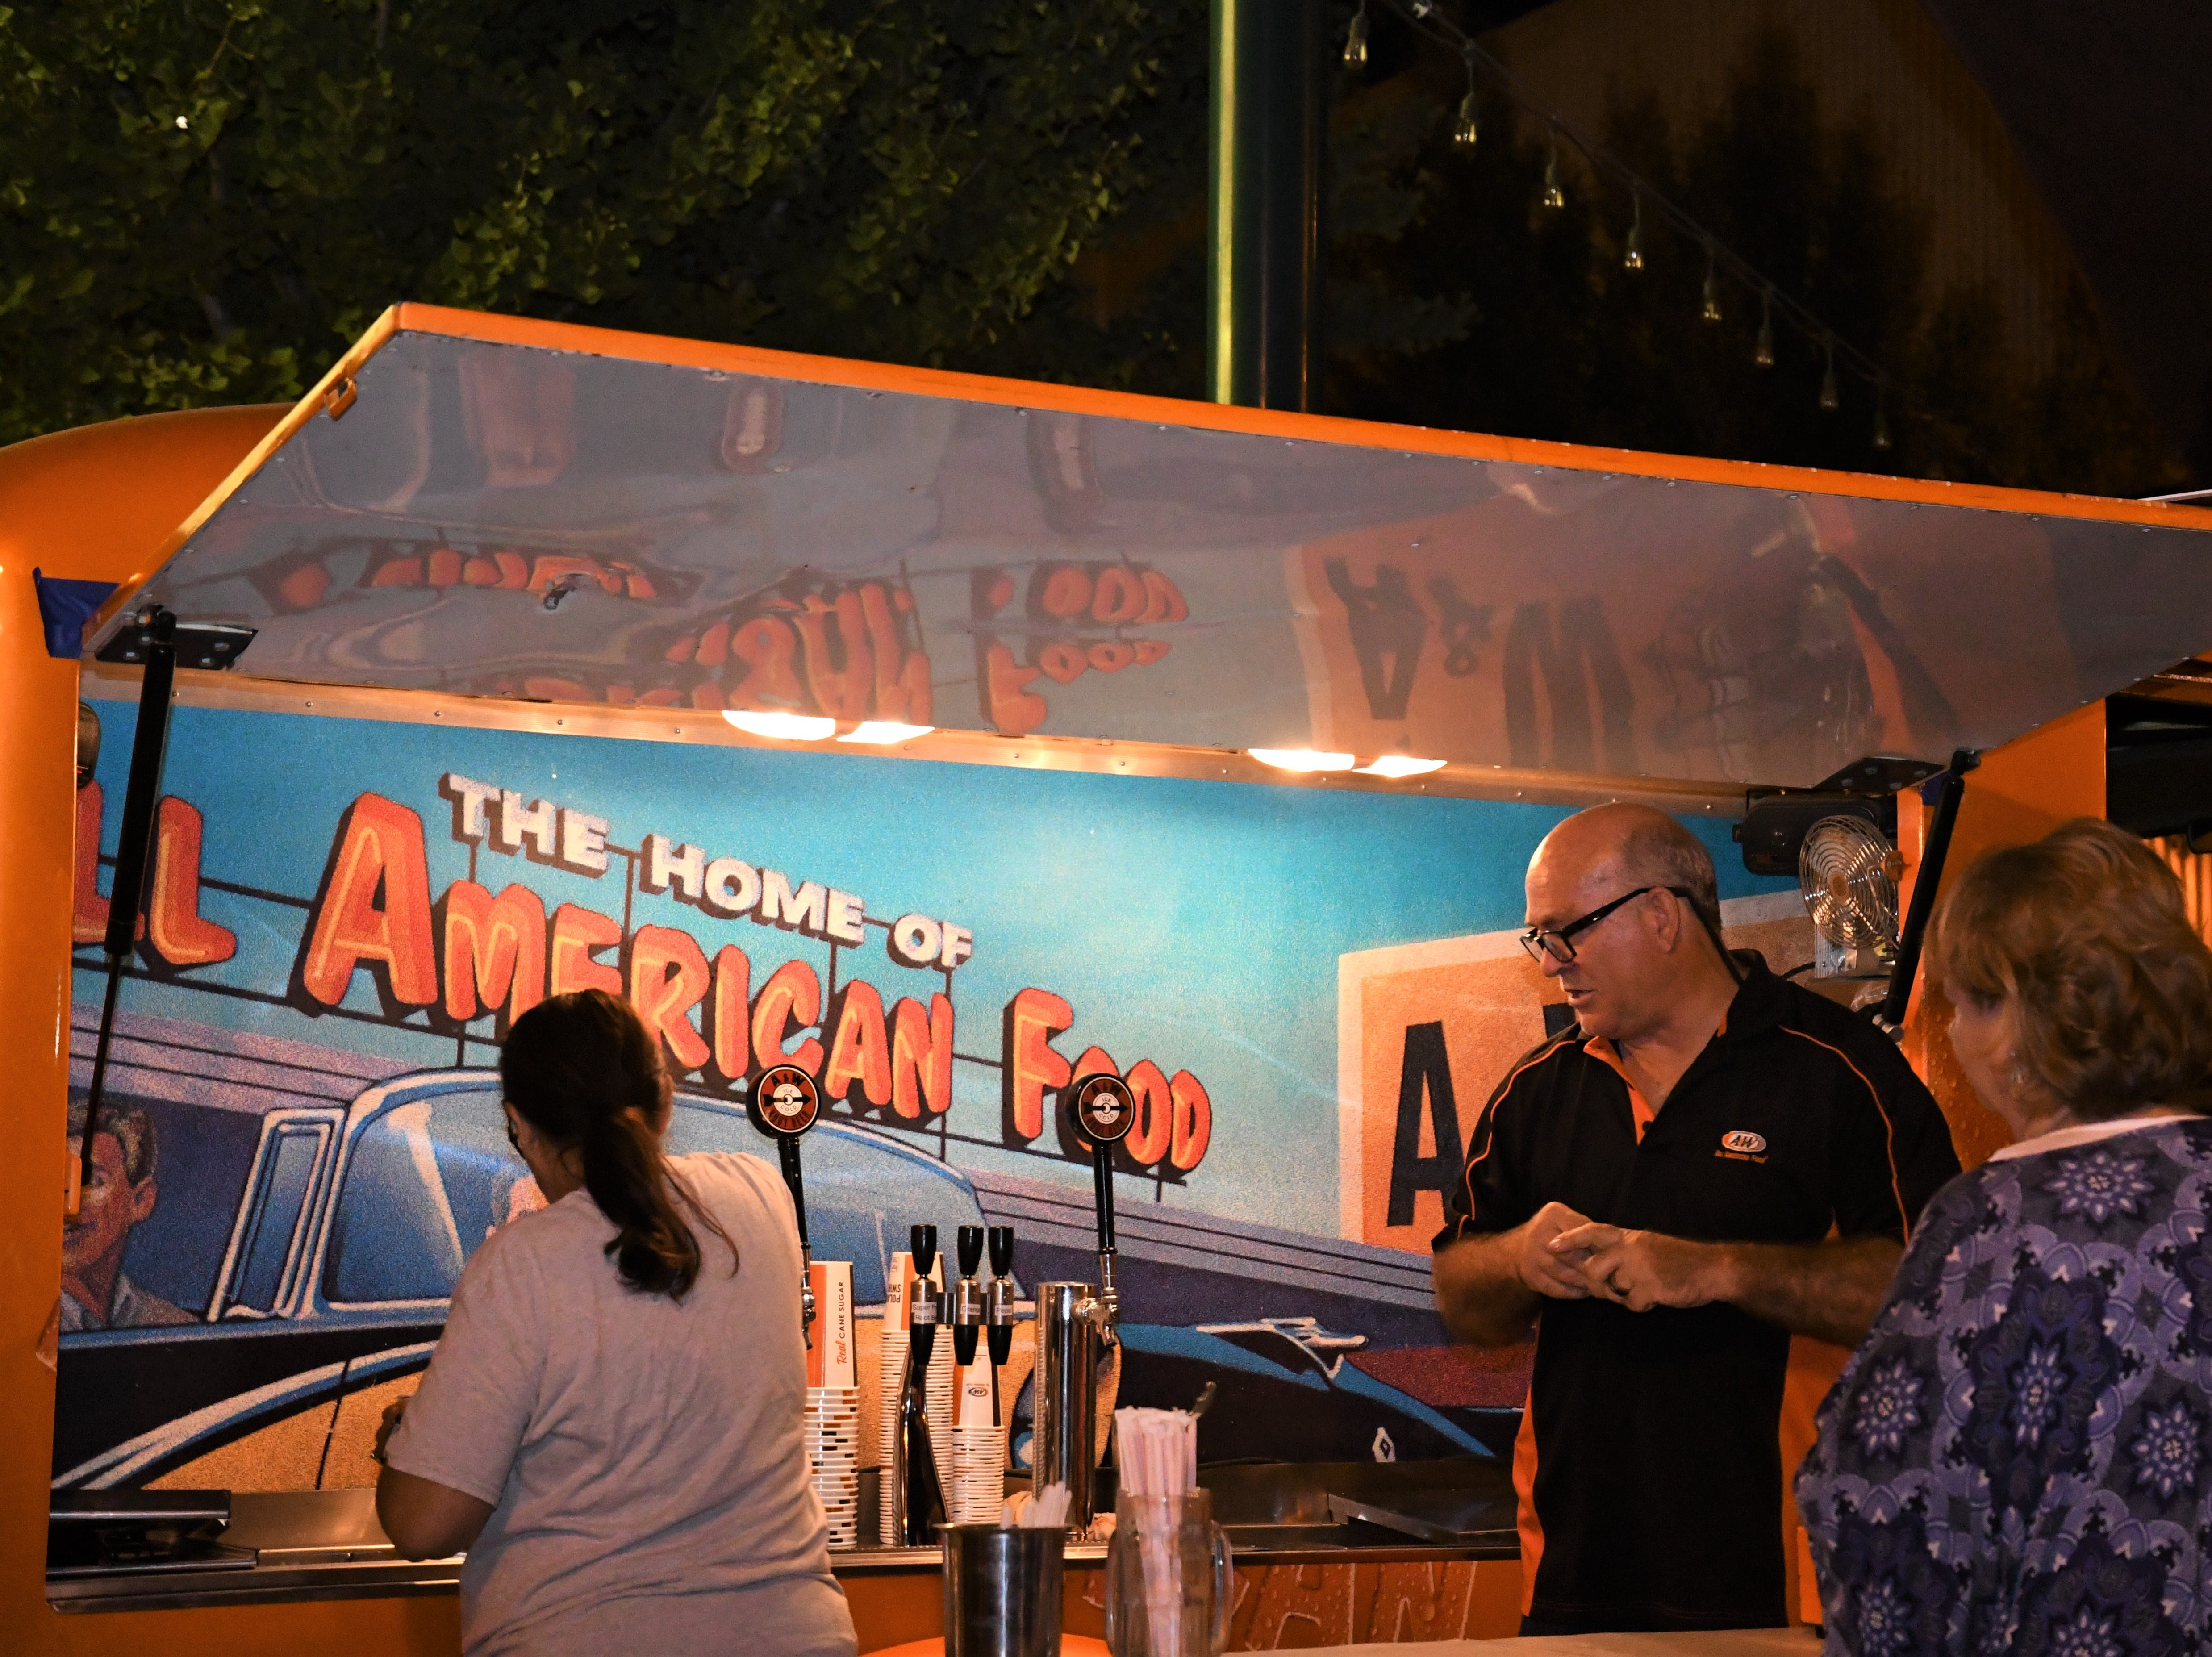 The A&W Root Beer Truck makes a welcome return to Taste of Downtown.